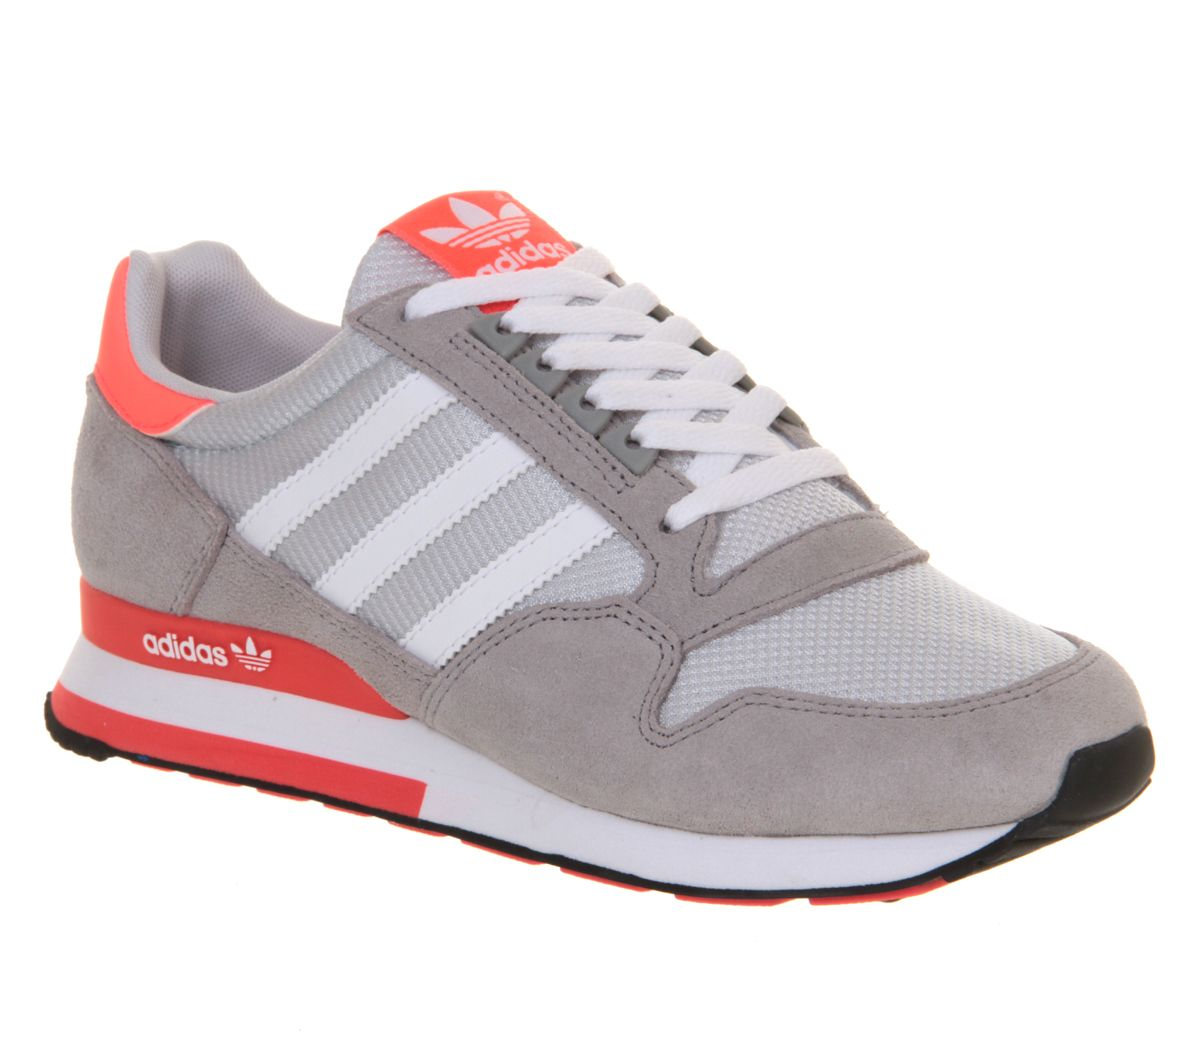 the latest 38233 6b57f Adidas Zx 500 Light Grey Neon Pink Exclusive - Unisex Sports